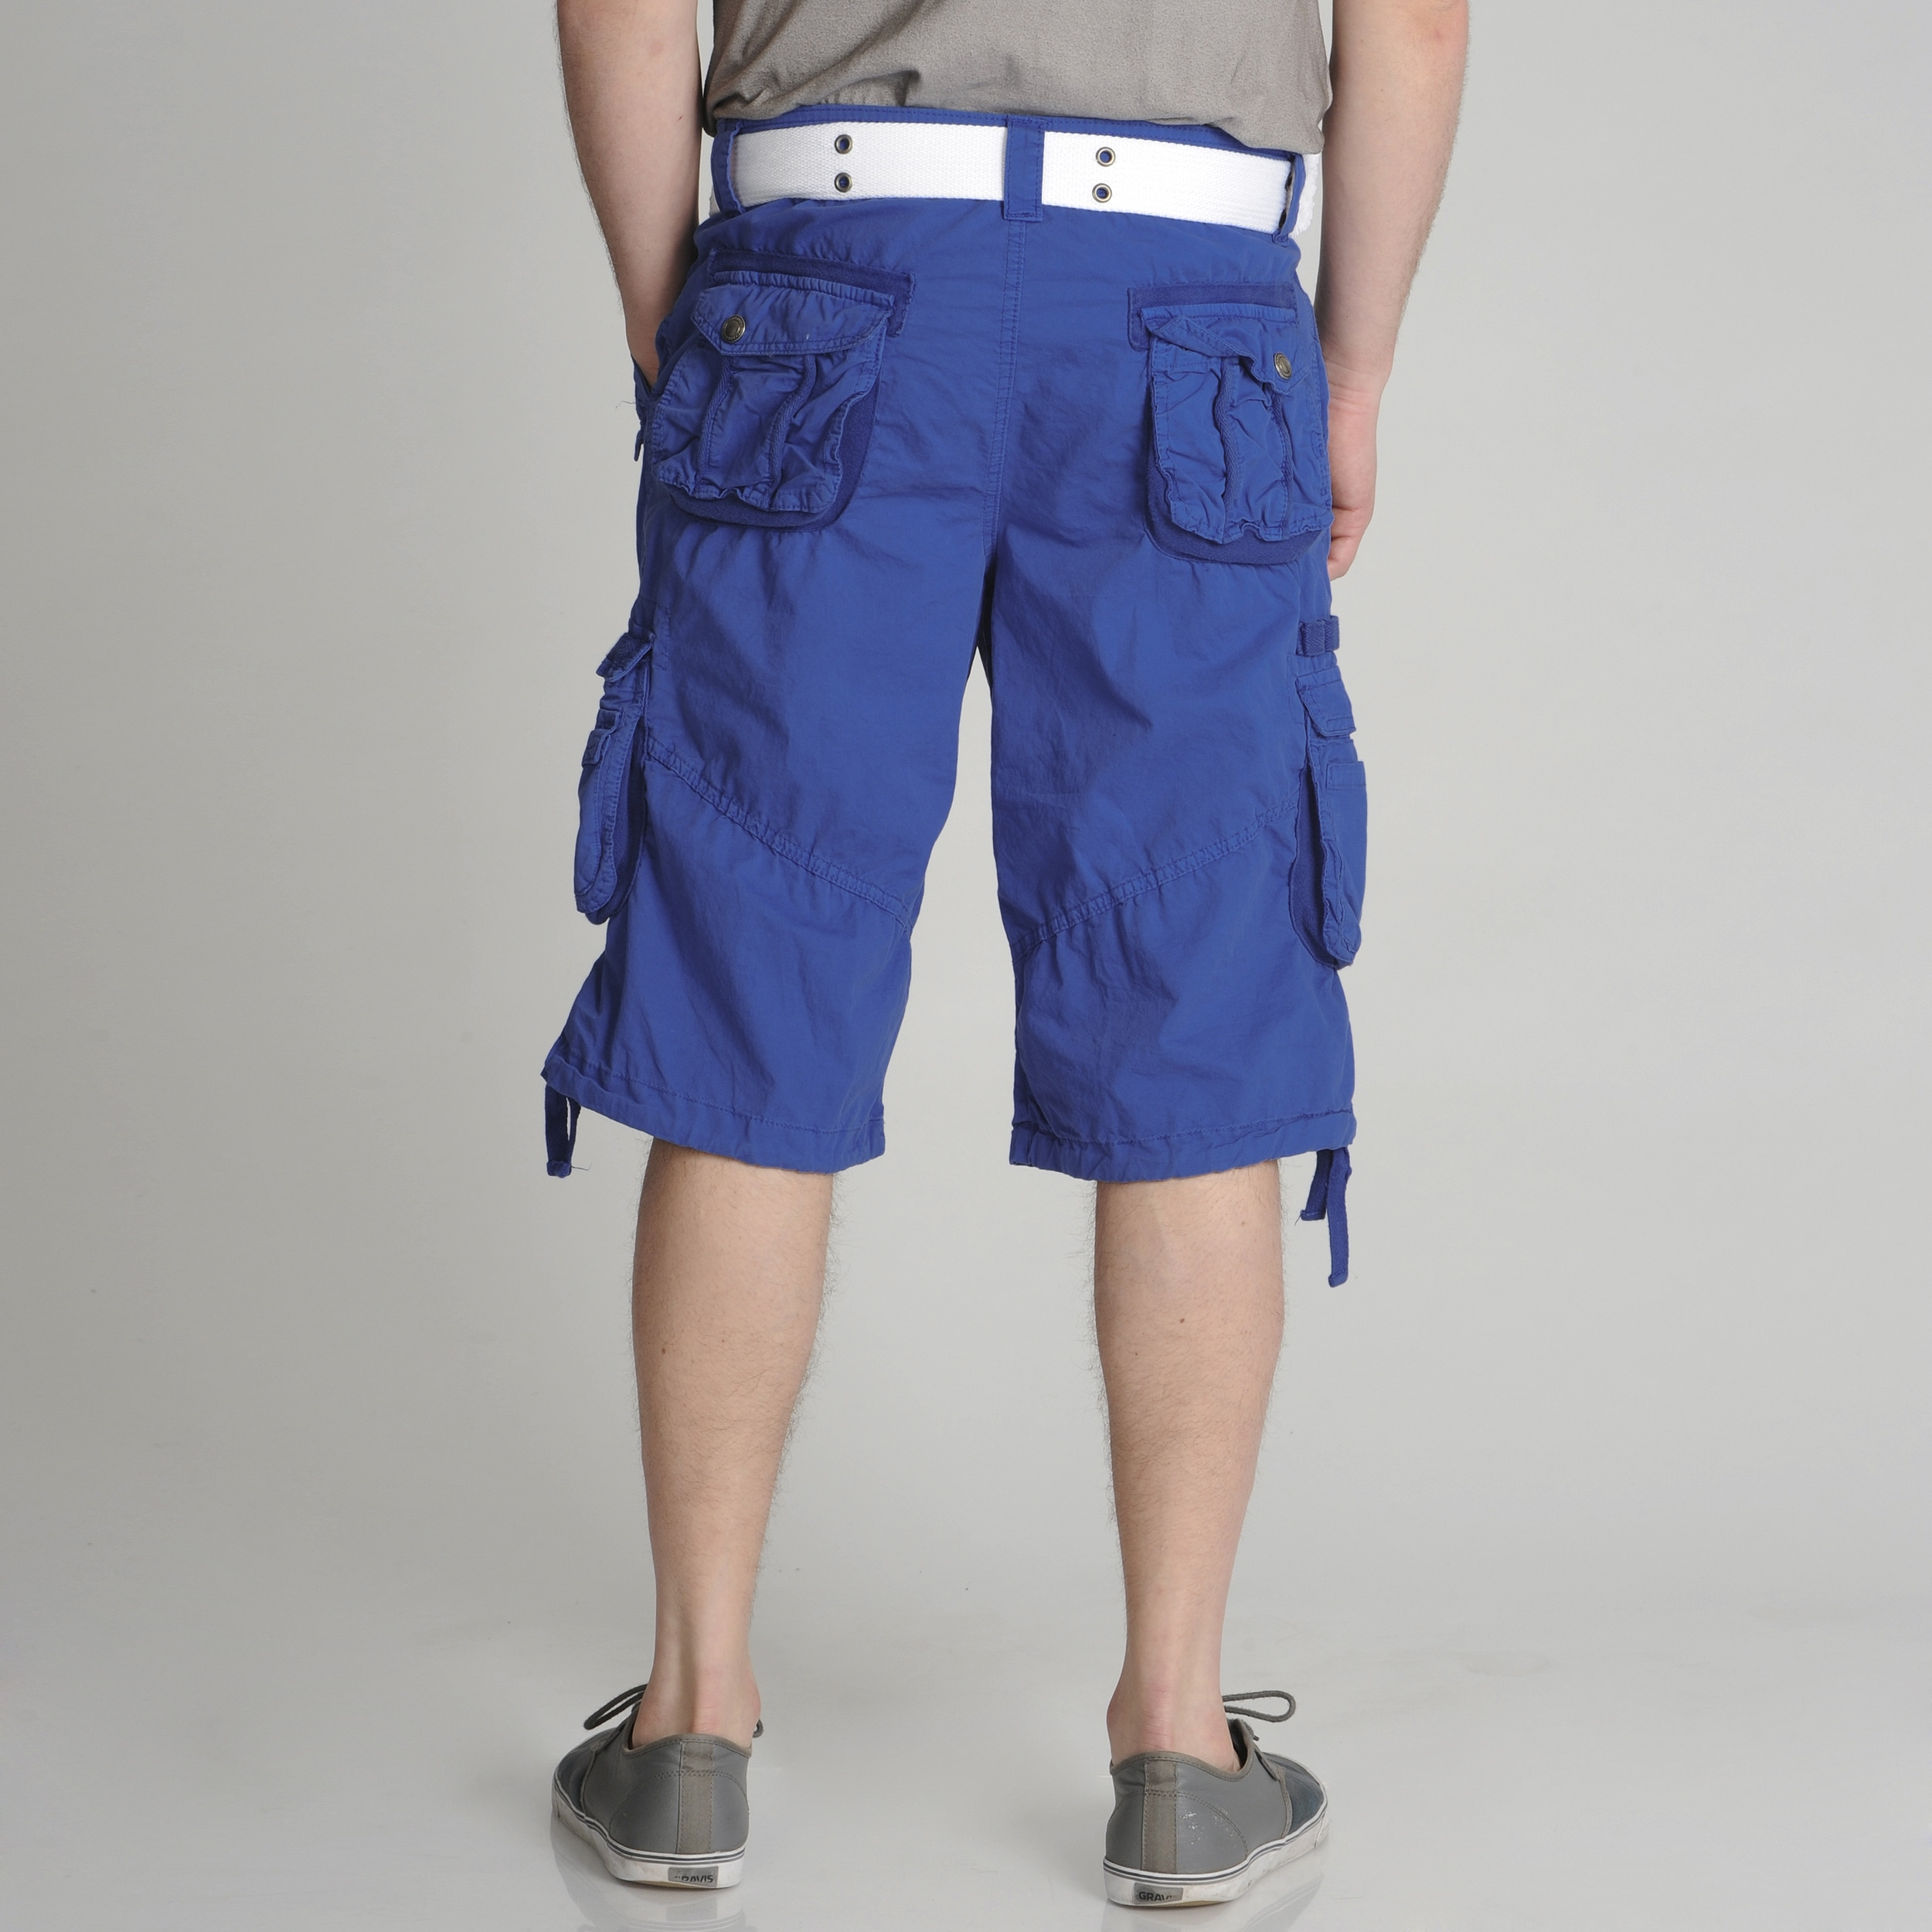 fd7e3a4659 Shop XRAY Jeans Men's Belted Cotton Cargo Shorts - Free Shipping On Orders  Over $45 - Overstock - 8004461